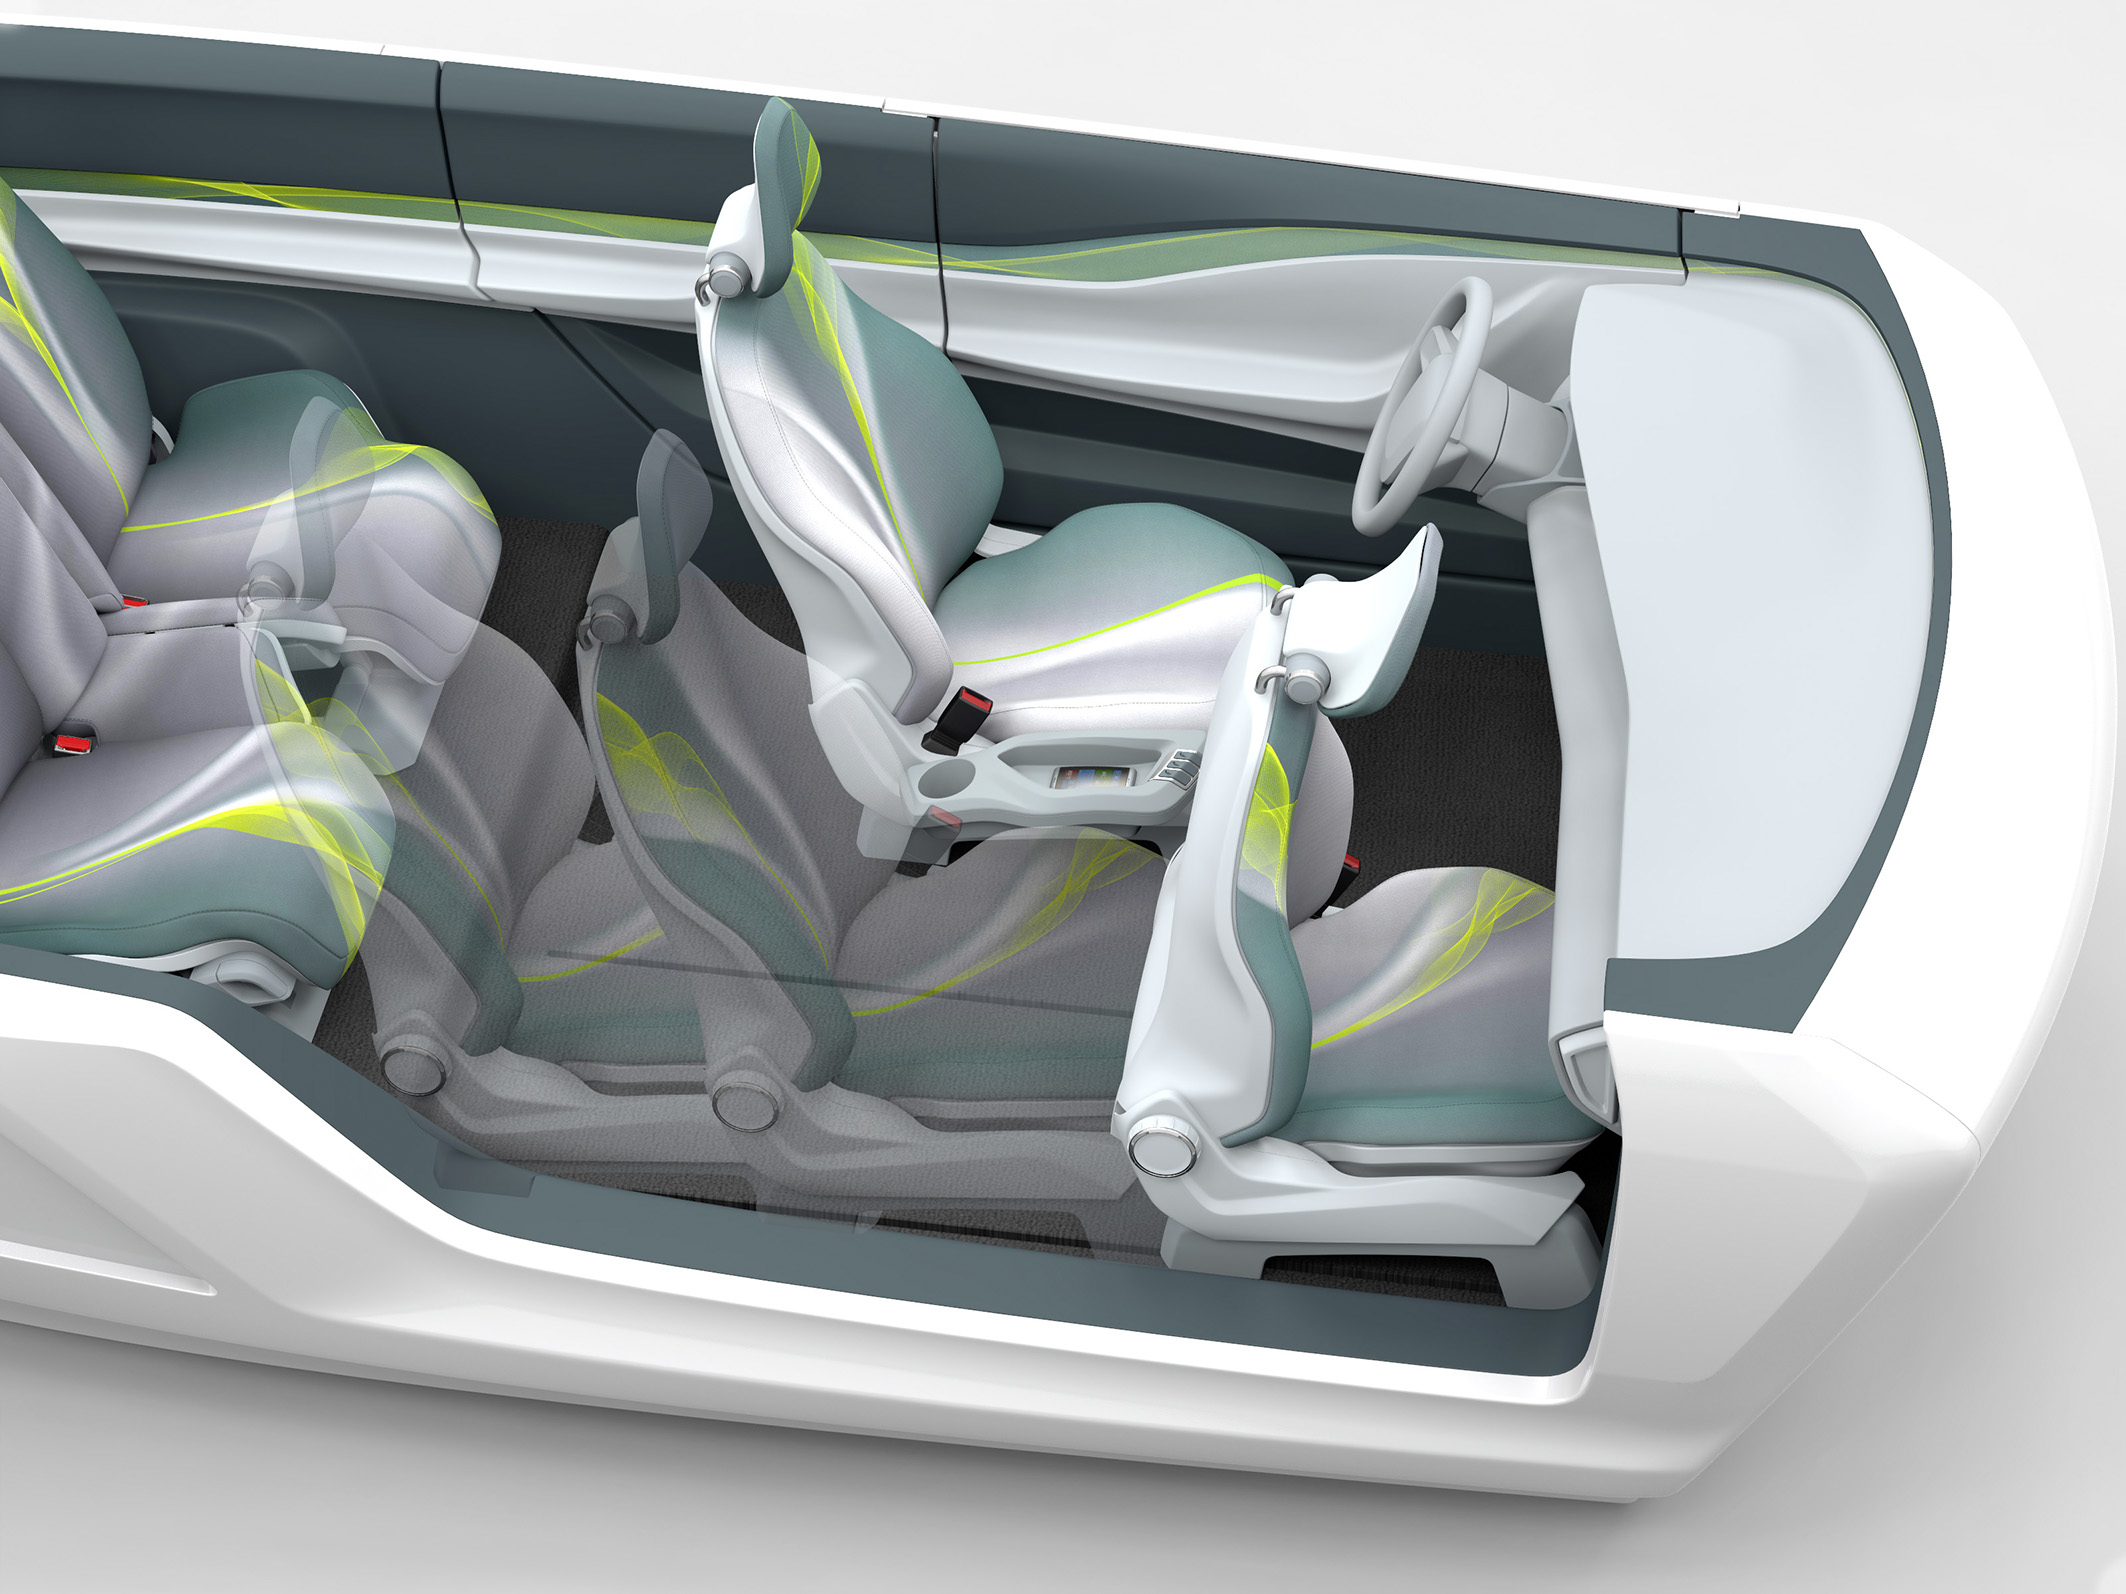 Johnson Controls Presents New Sd15 Seating Vehicle Concept